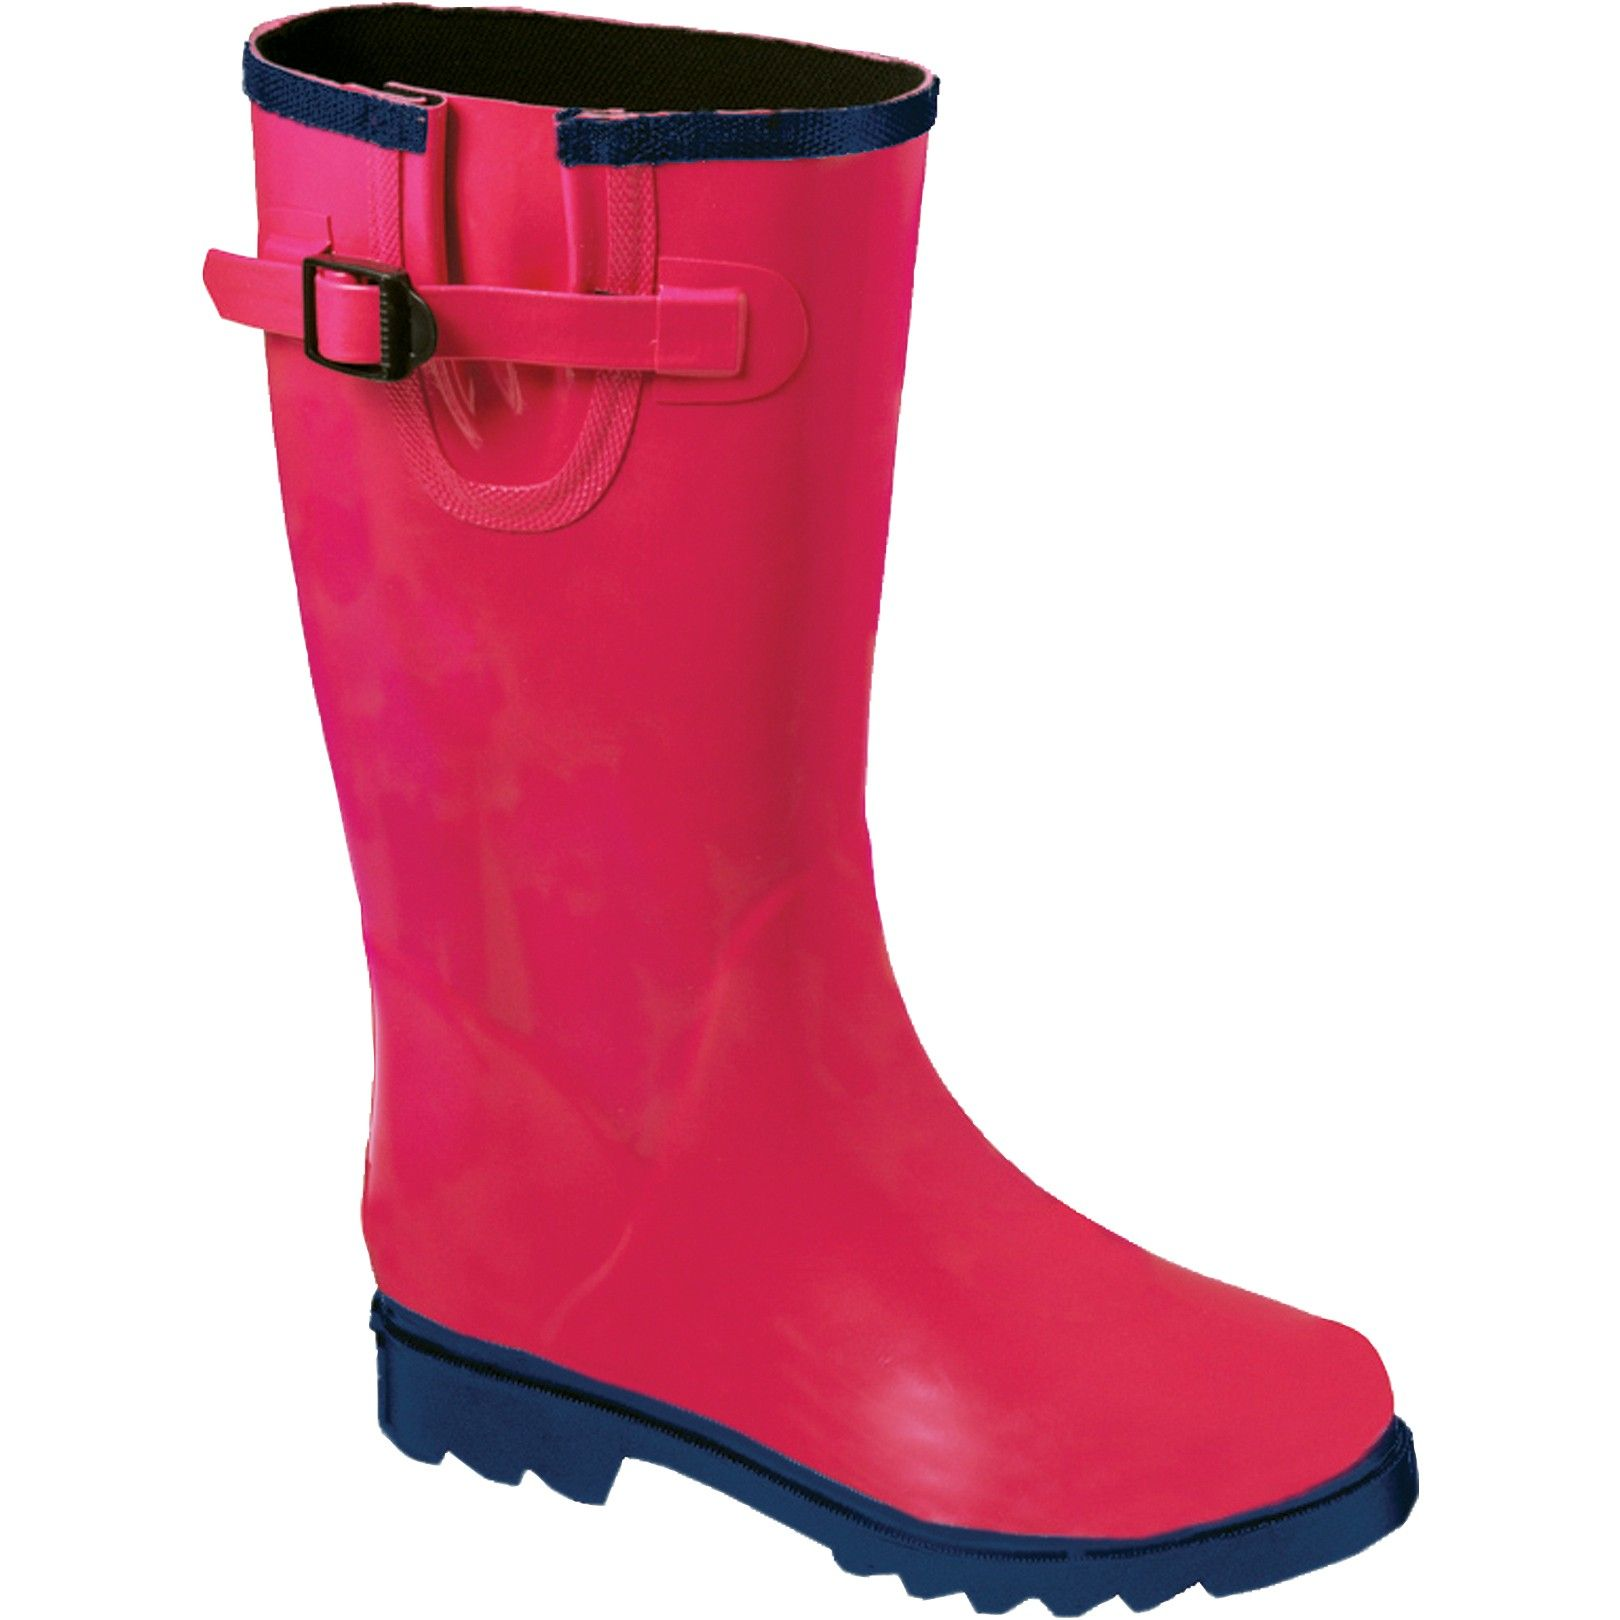 1000  images about Women's Safety Boots & Shoes on Pinterest ...